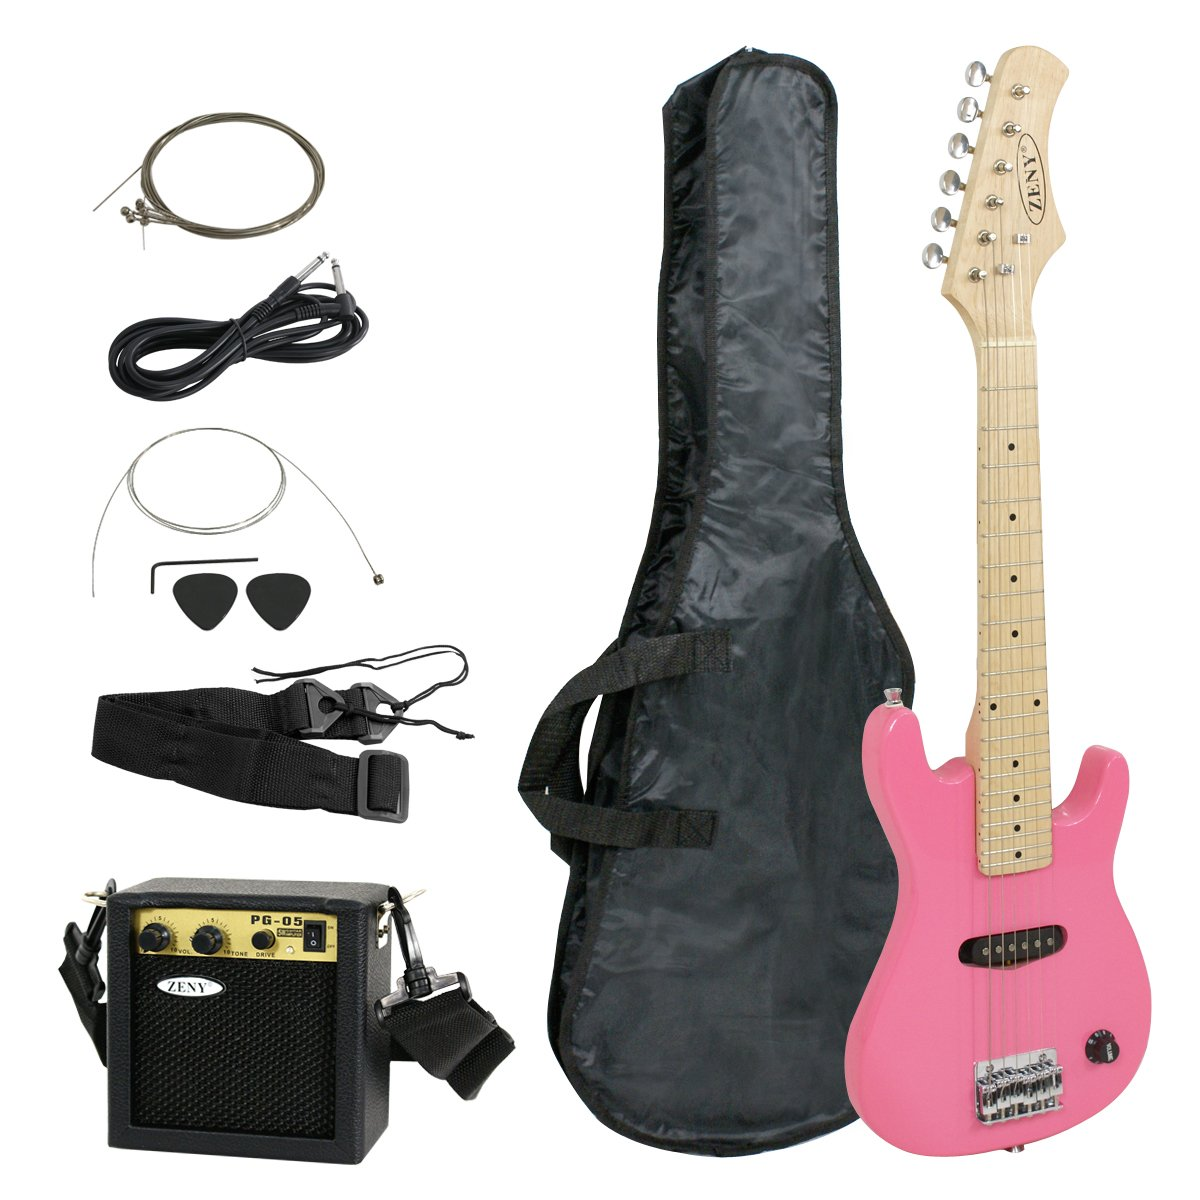 ZENY 30'' Electric Guitar Set Beginner Kits for Kids with 5W Amp,Gig Bag,Cable,Strap (Black)